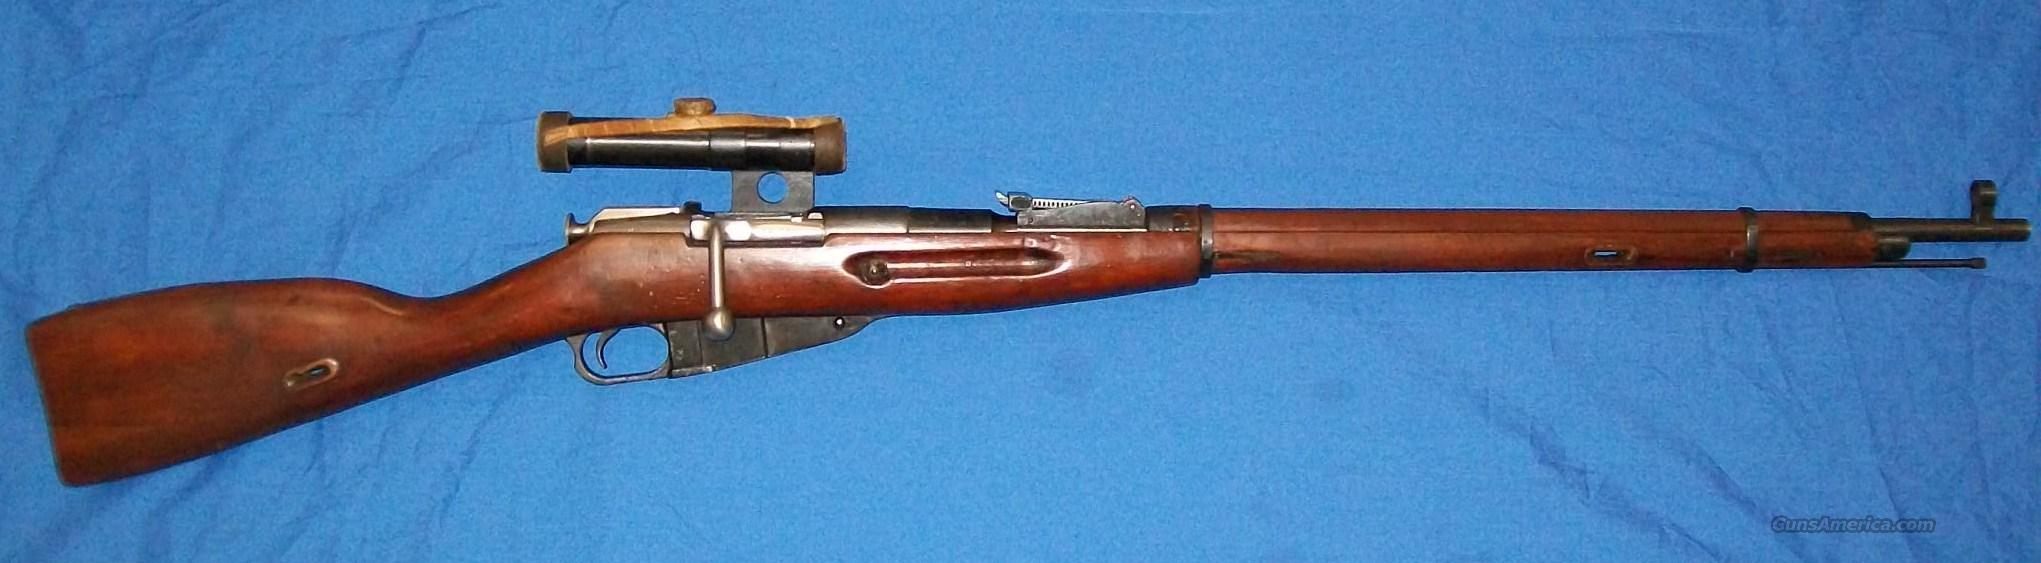 Mosin Nagant PU (AUTHENTIC SNIPER RIFLE )  Guns > Rifles > Century Arms International (CAI) - Rifles > Rifles